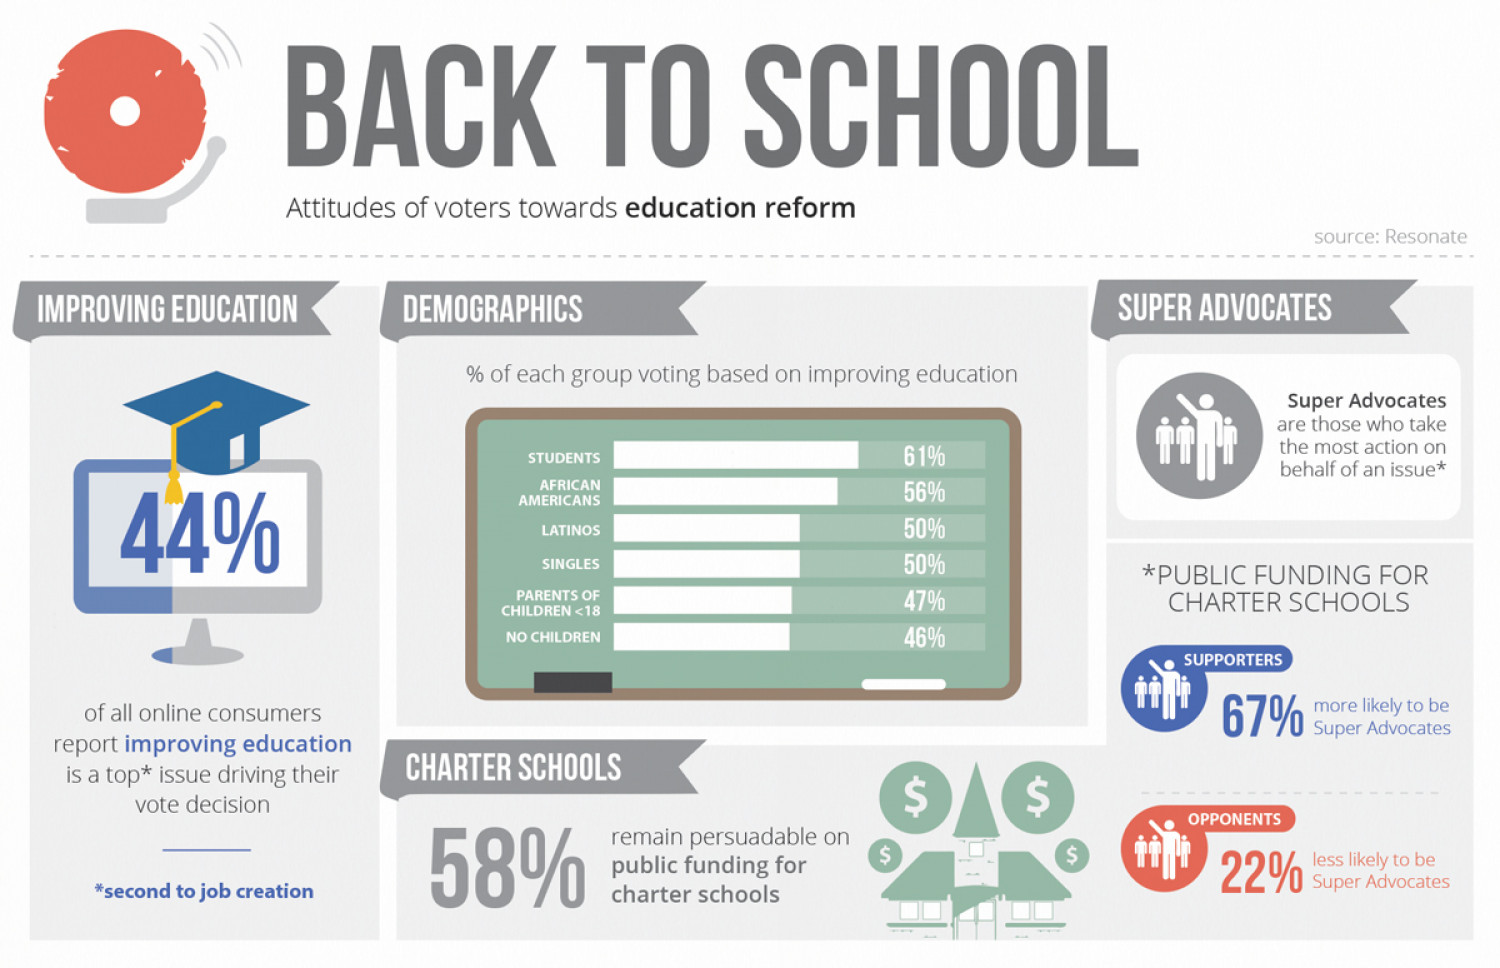 Back To School: Attitudes of voters toward education reform Infographic